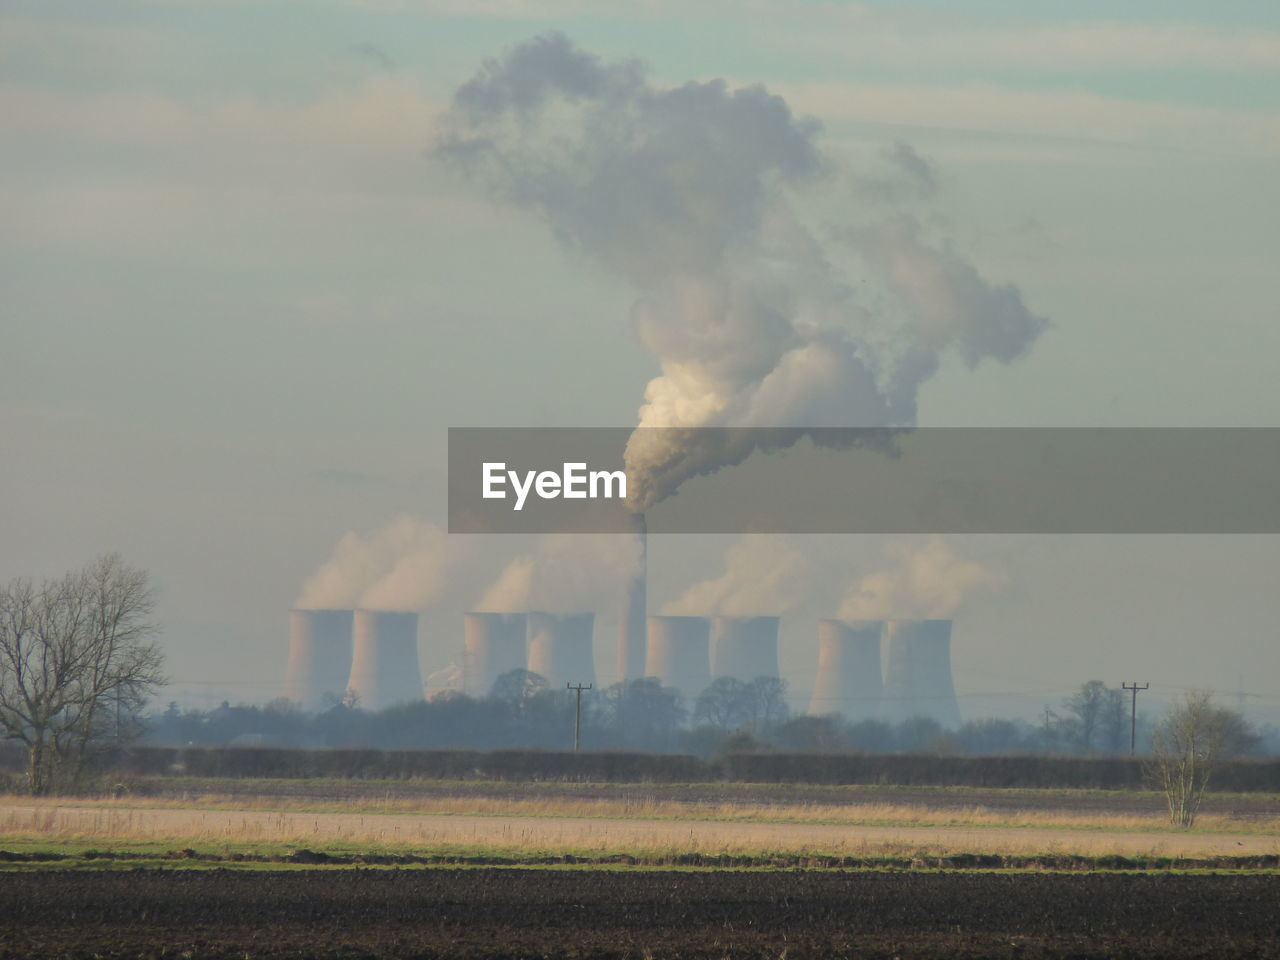 environment, smoke - physical structure, environmental issues, pollution, air pollution, emitting, smoke stack, nature, sky, factory, field, industry, land, smoke, day, building exterior, outdoors, environmental damage, no people, chimney, fumes, atmospheric, ecosystem, cooling tower